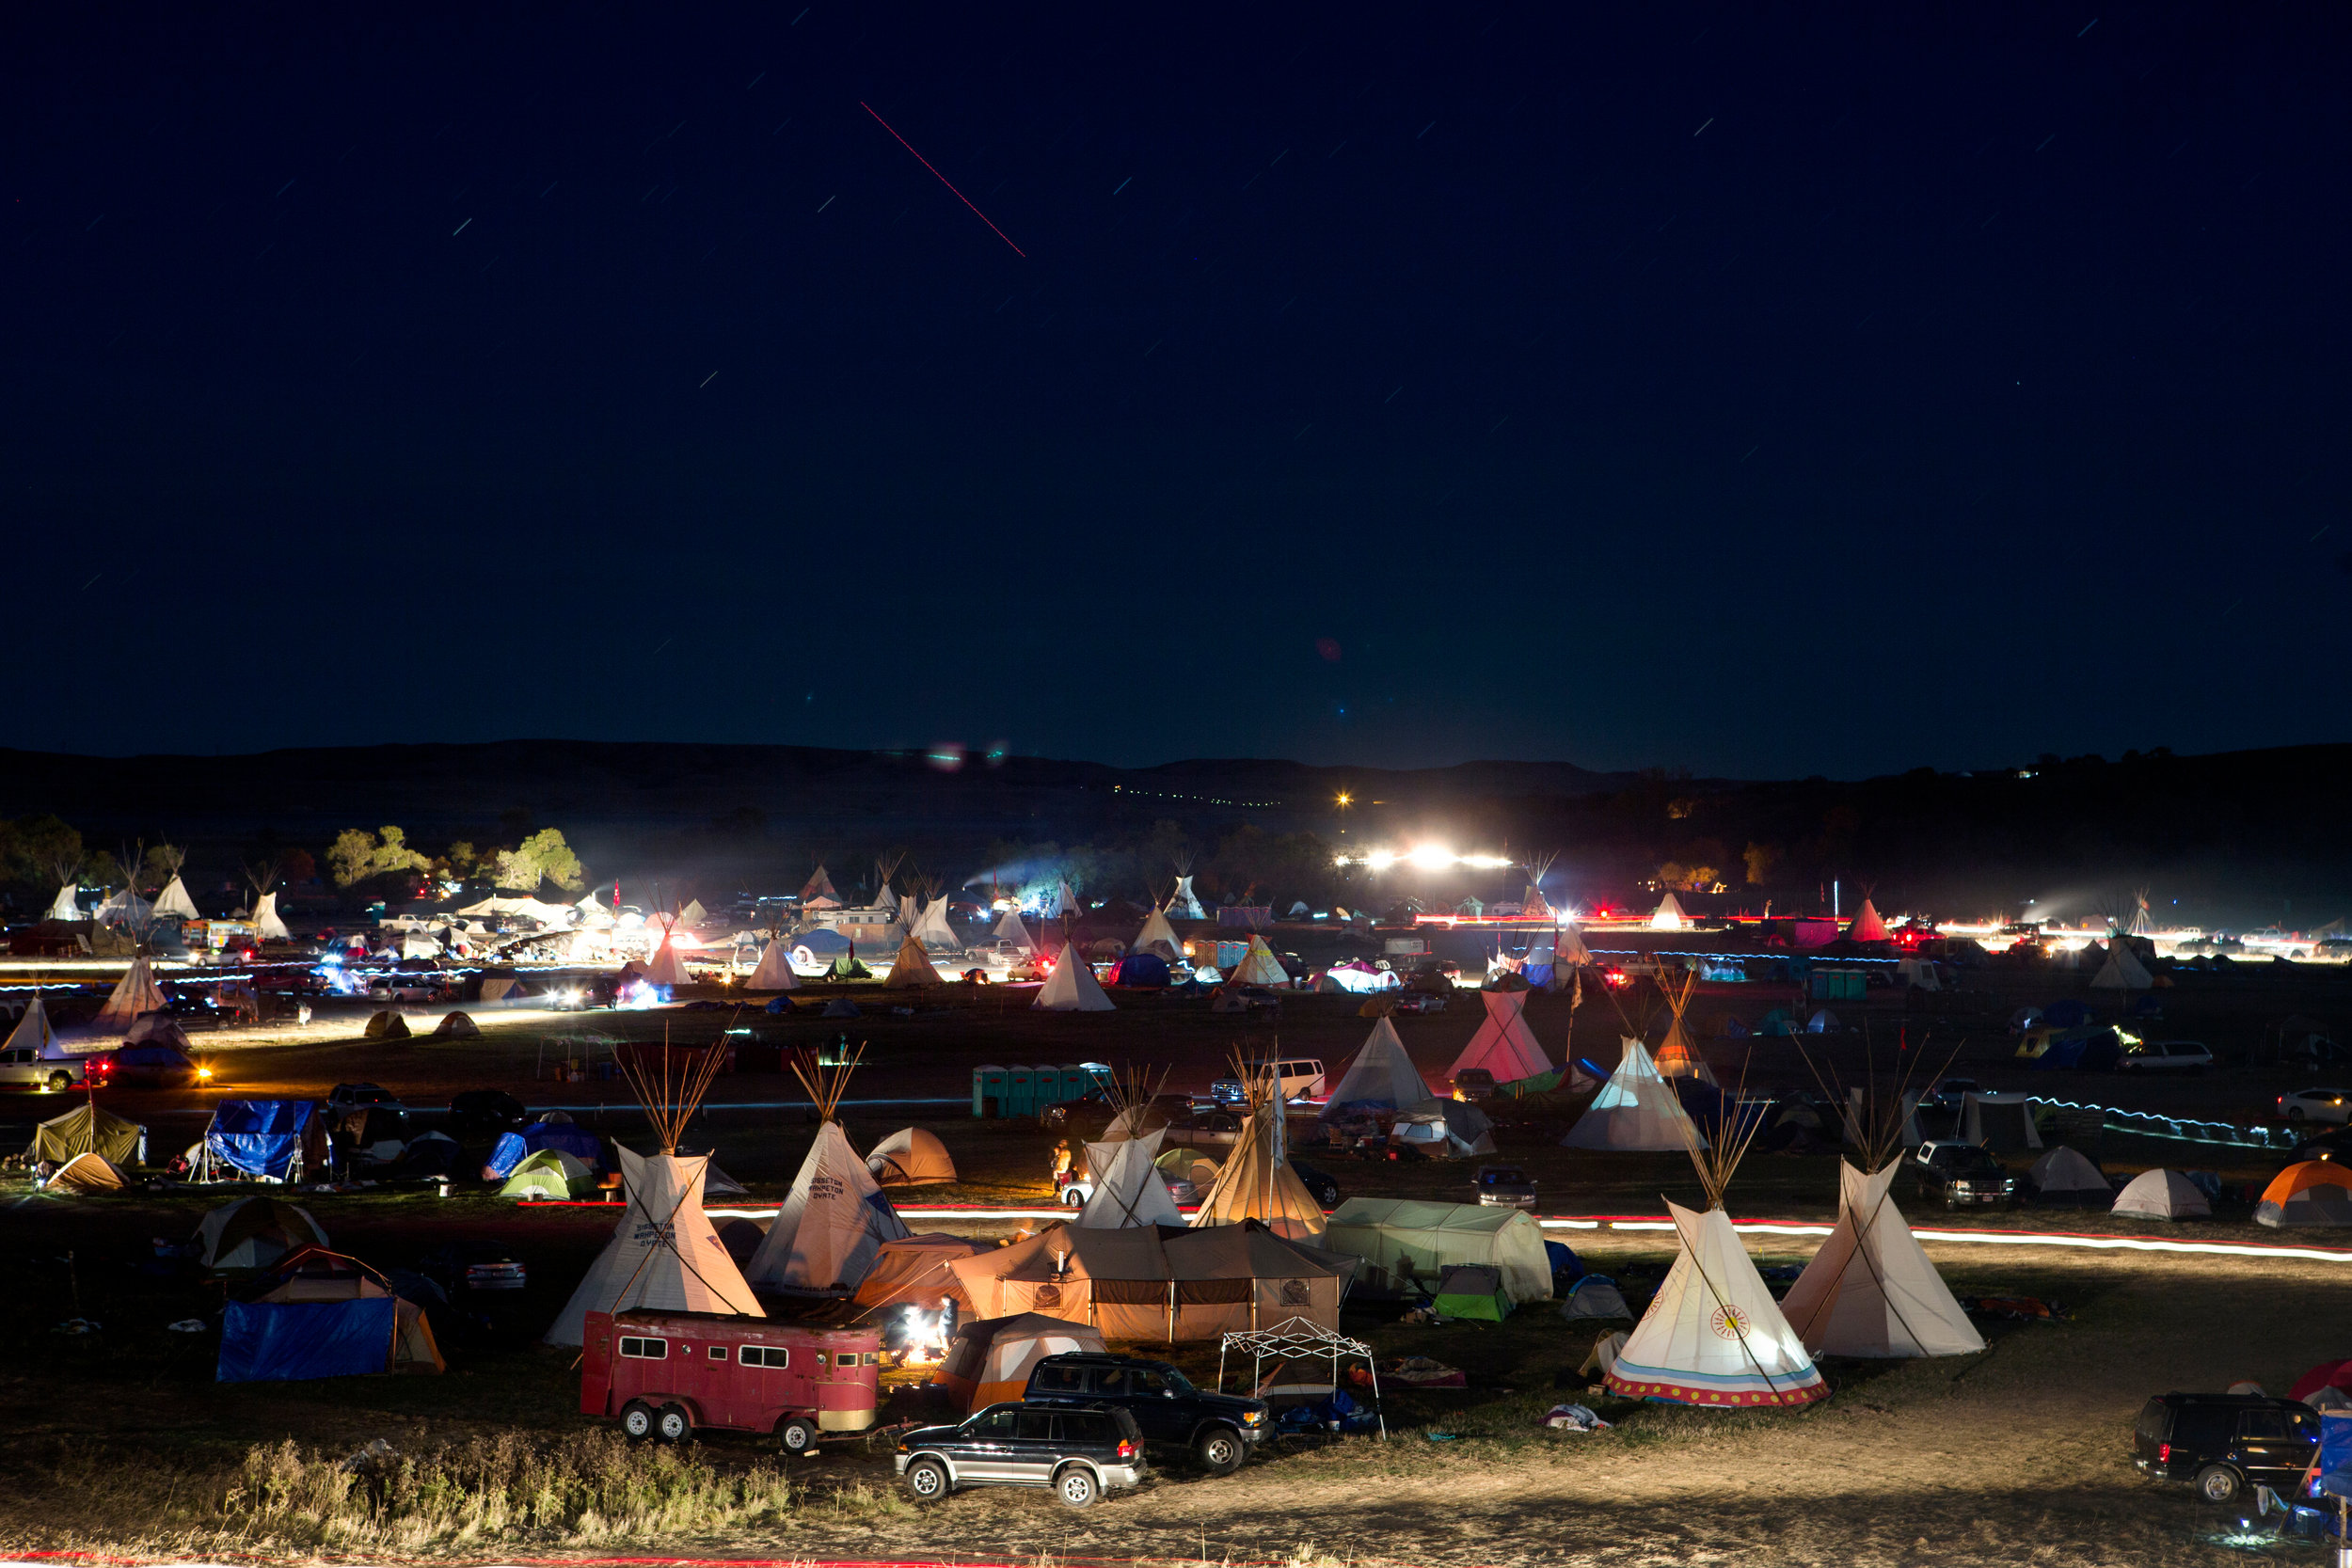 A long exposure shows the movement of activity at the Seven Councils Camp just after dusk on Saturday evening, Oct. 8, 2016. Saturday marked the 60th day of protest encampments surrounding the Dakota Access Pipeline near Cannon Ball, North Dakota. Law enforcement has reached out to federal agencies for both monetary and personnel assistance. Tensions have flared in recent weeks between law enforcement and protestors, as well as between private security and protestors. Kristina Barker for The New York Times